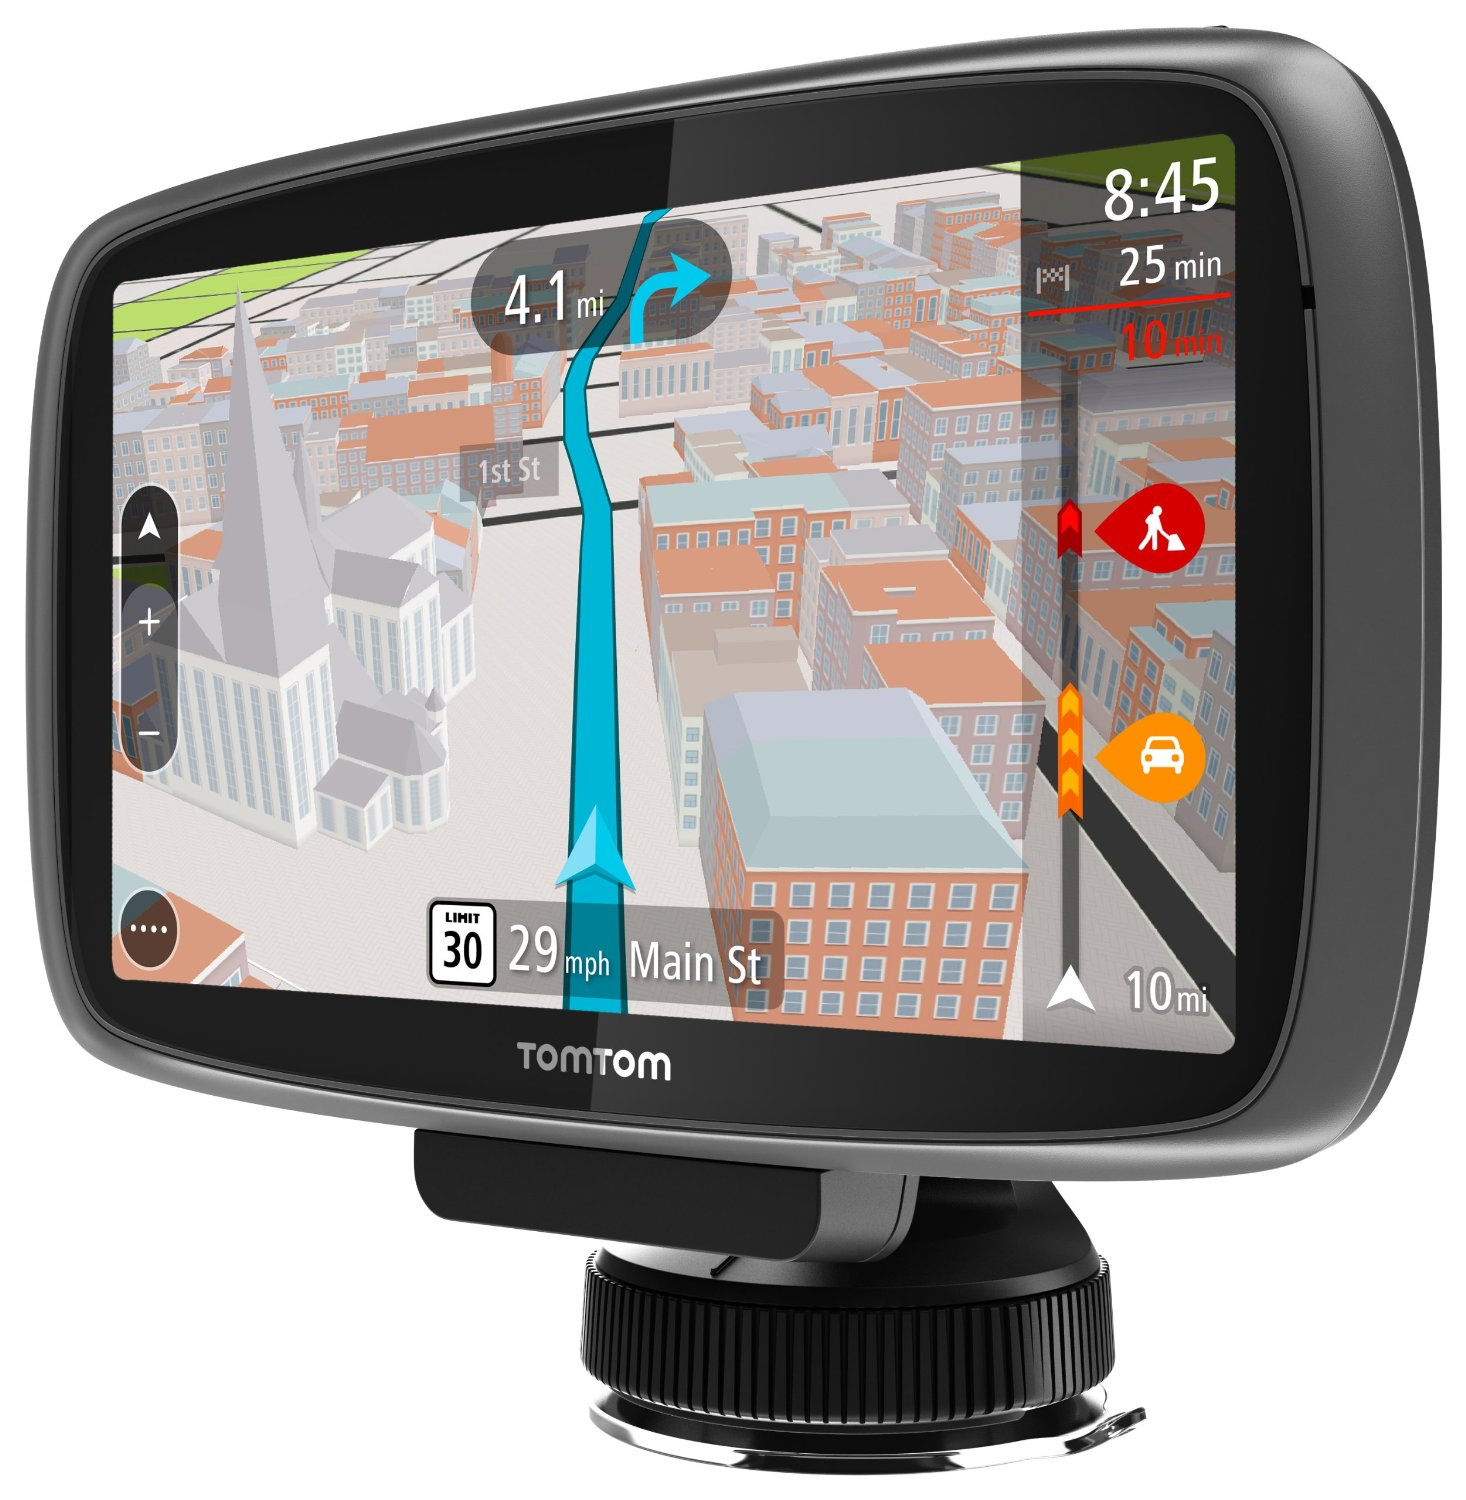 Download Update Tomtom Gps Portable - Tomtom gps usa map download free